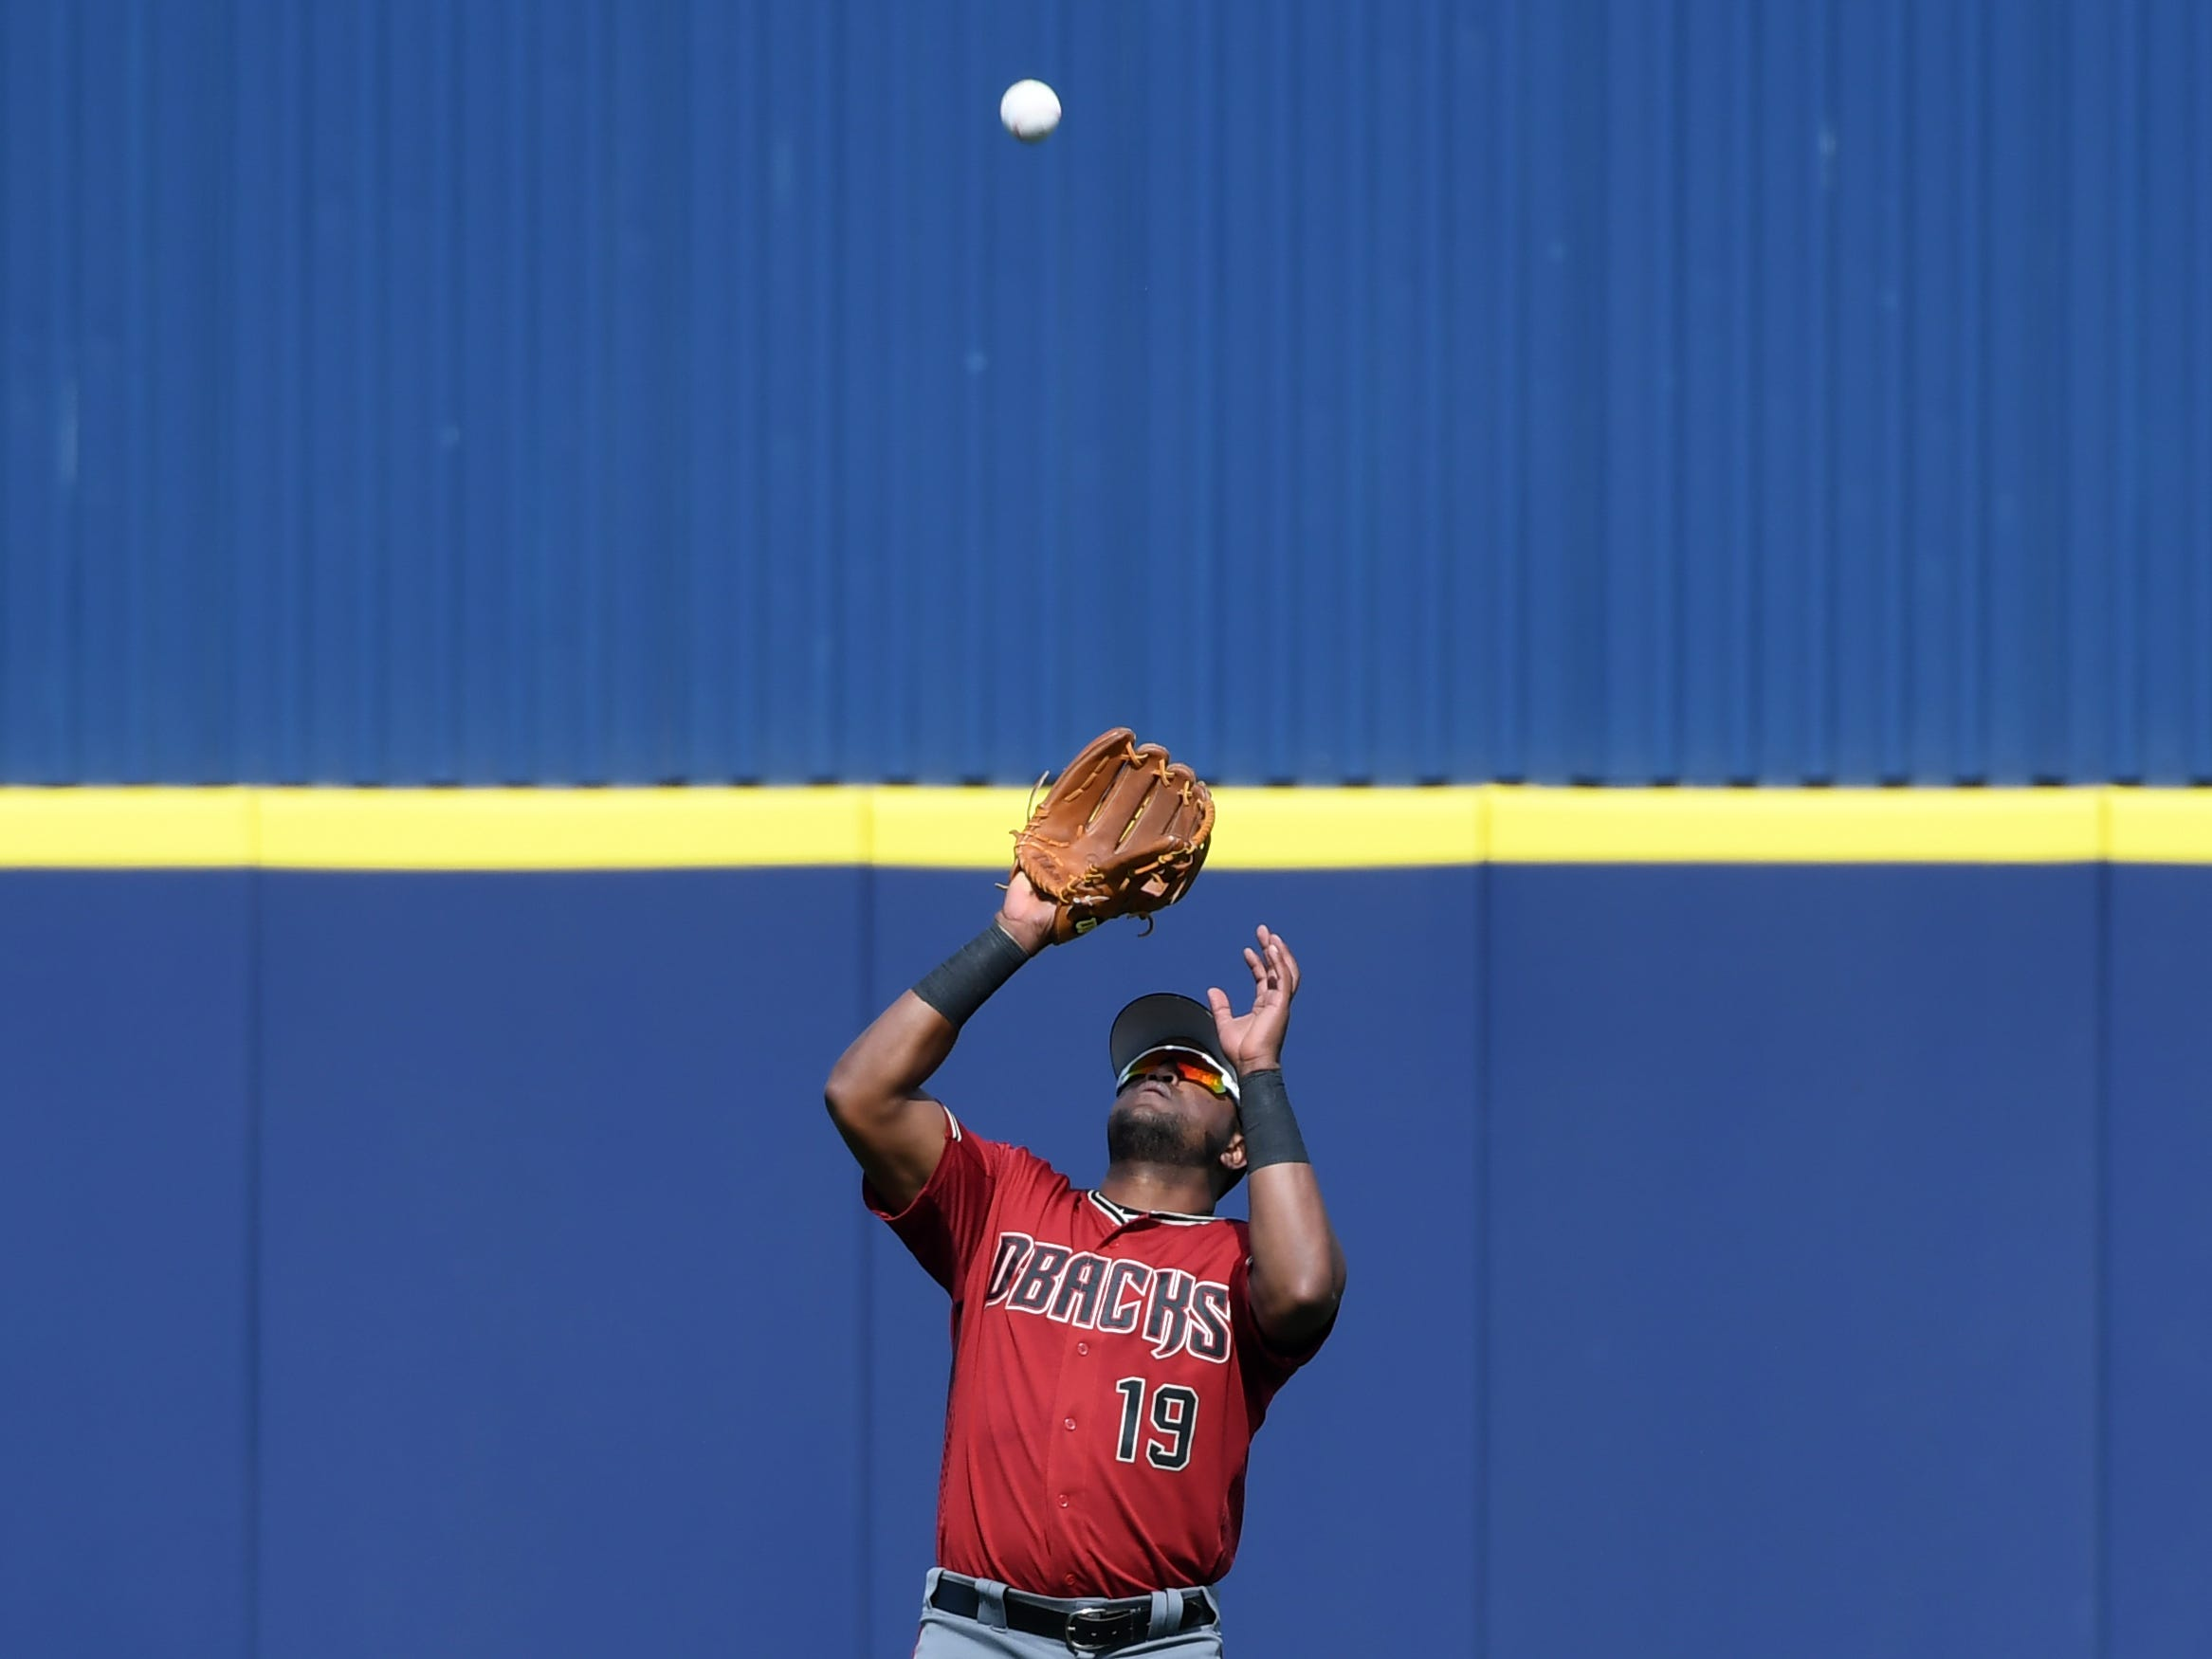 Socrates Brito #19 of the Arizona Diamondbacks catches a fly ball against the Milwaukee Brewers during the fourth inning of a spring training game at Maryvale Baseball Park on March 06, 2019 in Phoenix, Arizona.